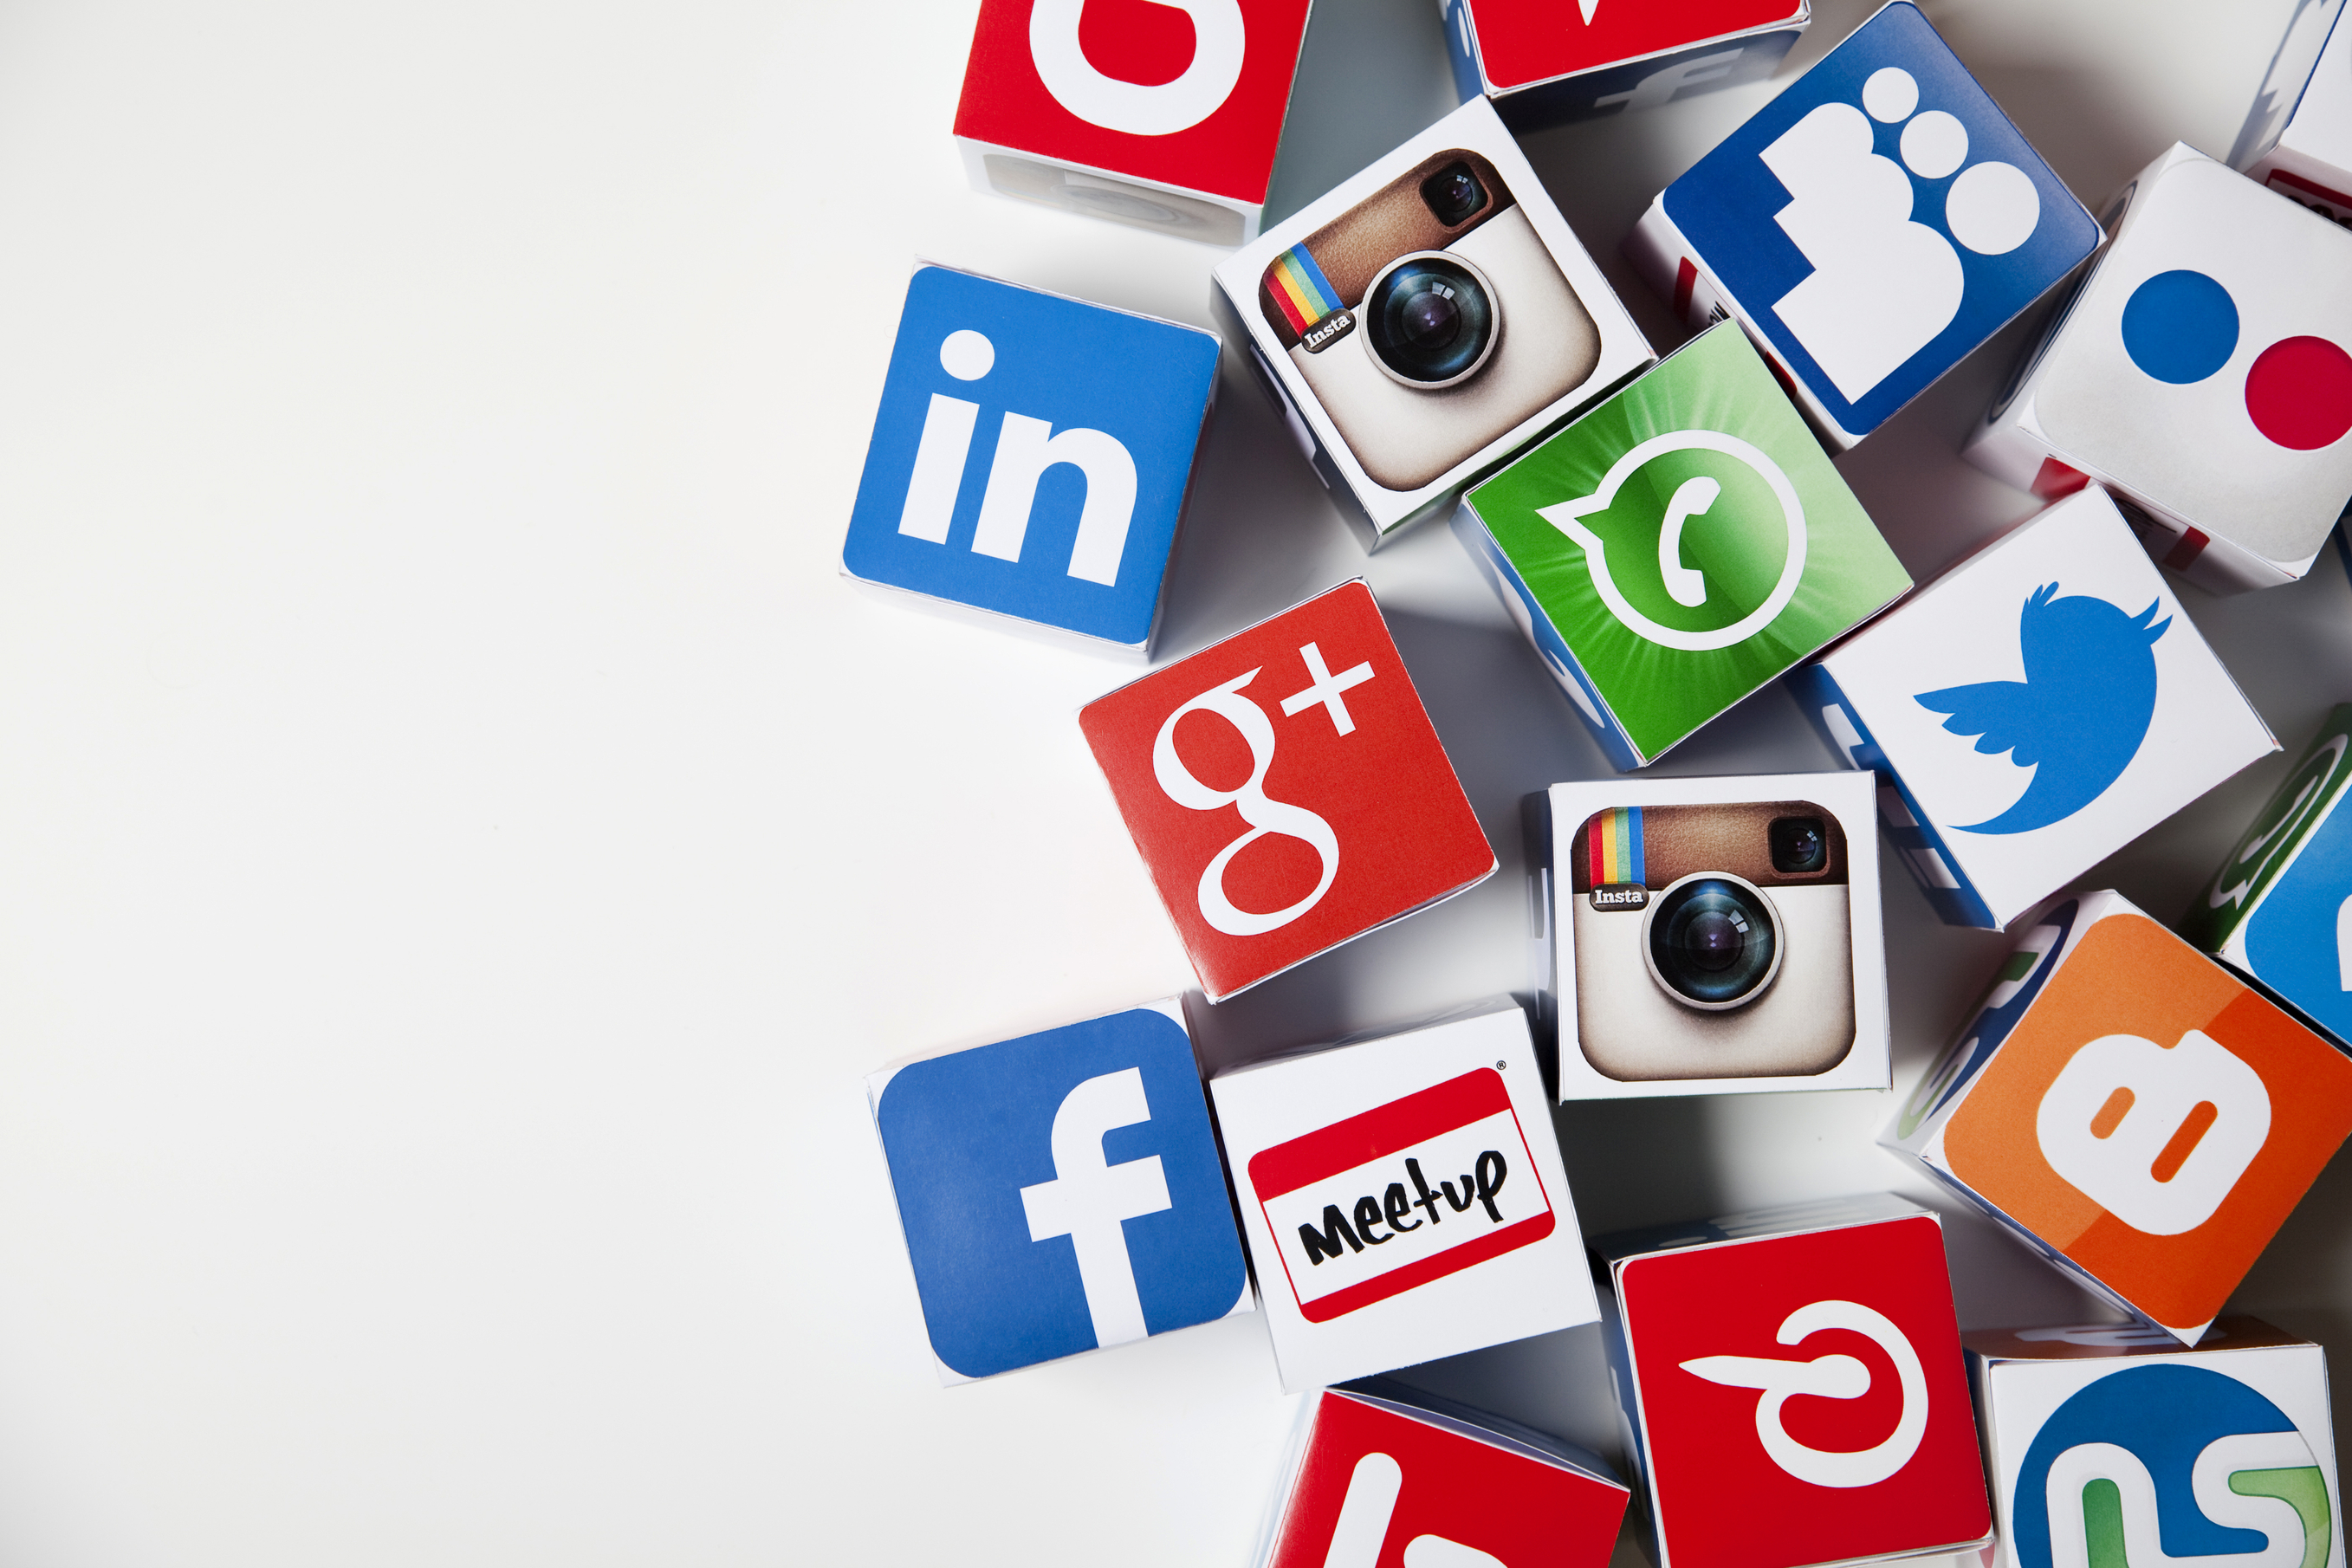 social media marketing strategies Social media marketing is the process of creating content that you have tailored to the context of each individual social media platform in order to drive user engagement and sharing you gaining traffic is only the result of social media marketing.